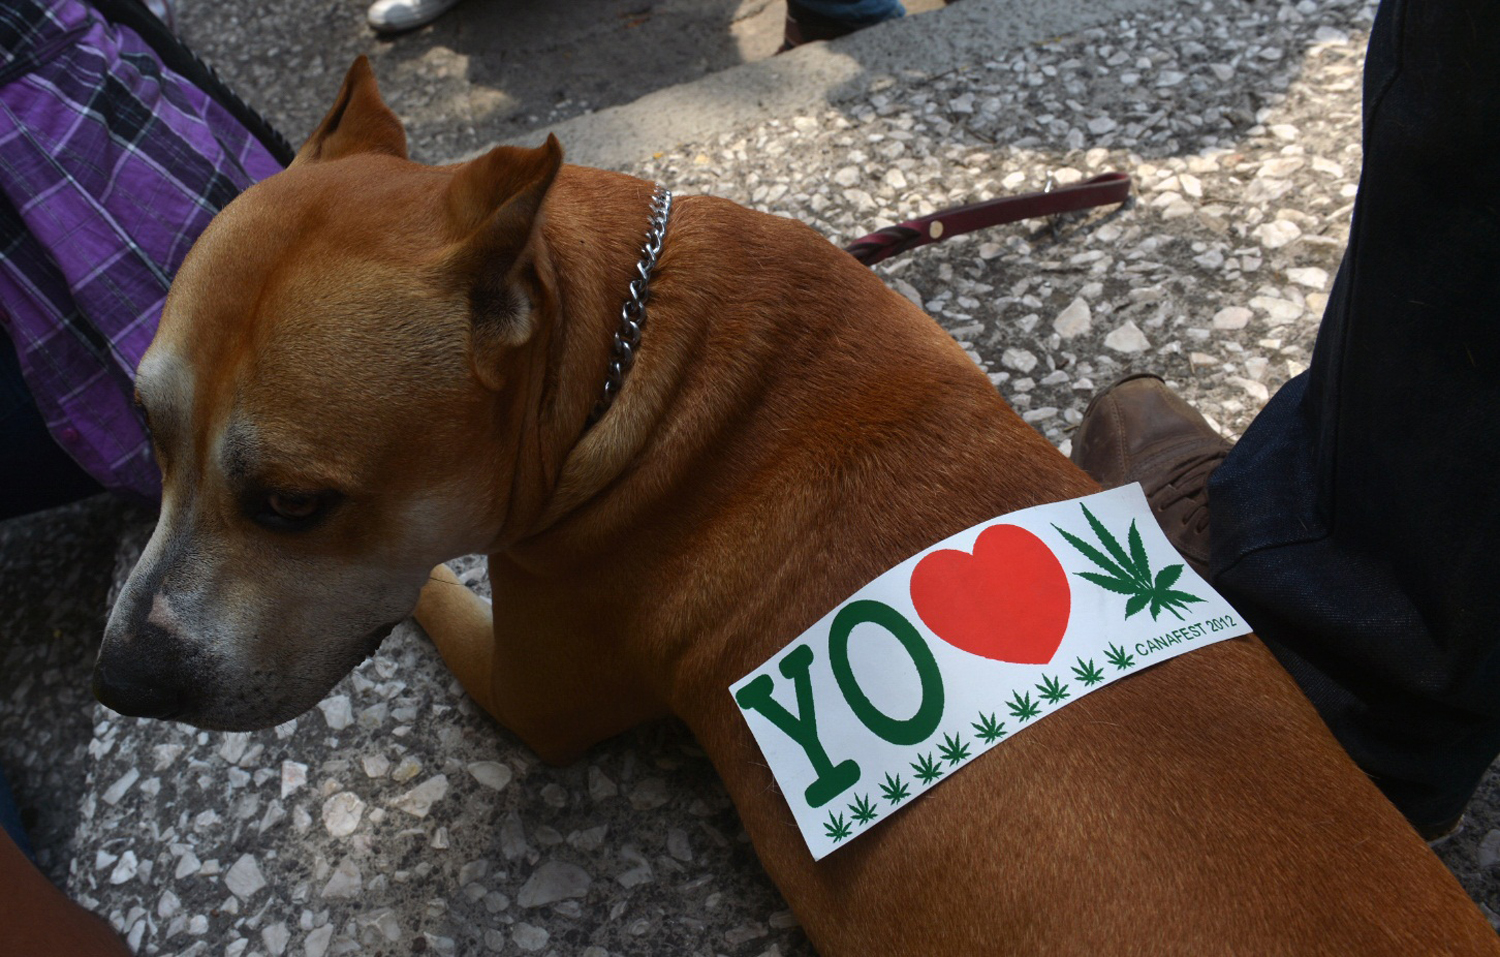 A sticker is seen on a dog's back during a demo in support of the legalization of marijuana in Mexico City on May 5, 2012.